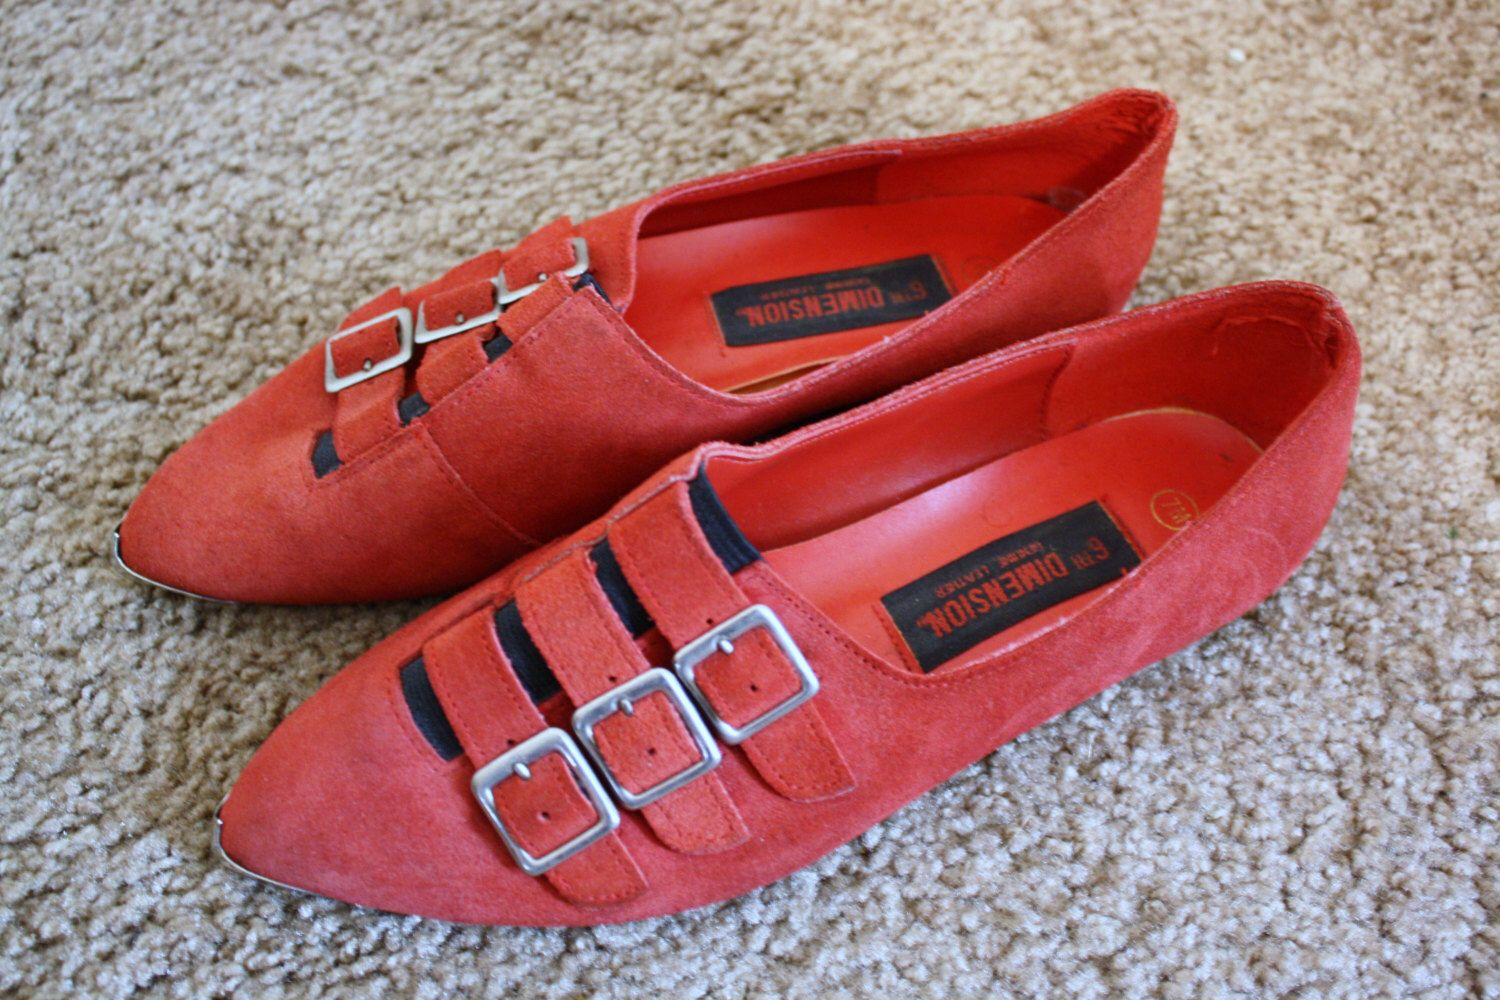 9c18f3bb688b1 Red Suede Vintage 80s Pointed Buckle Flats Winklepicker Style Goth ...